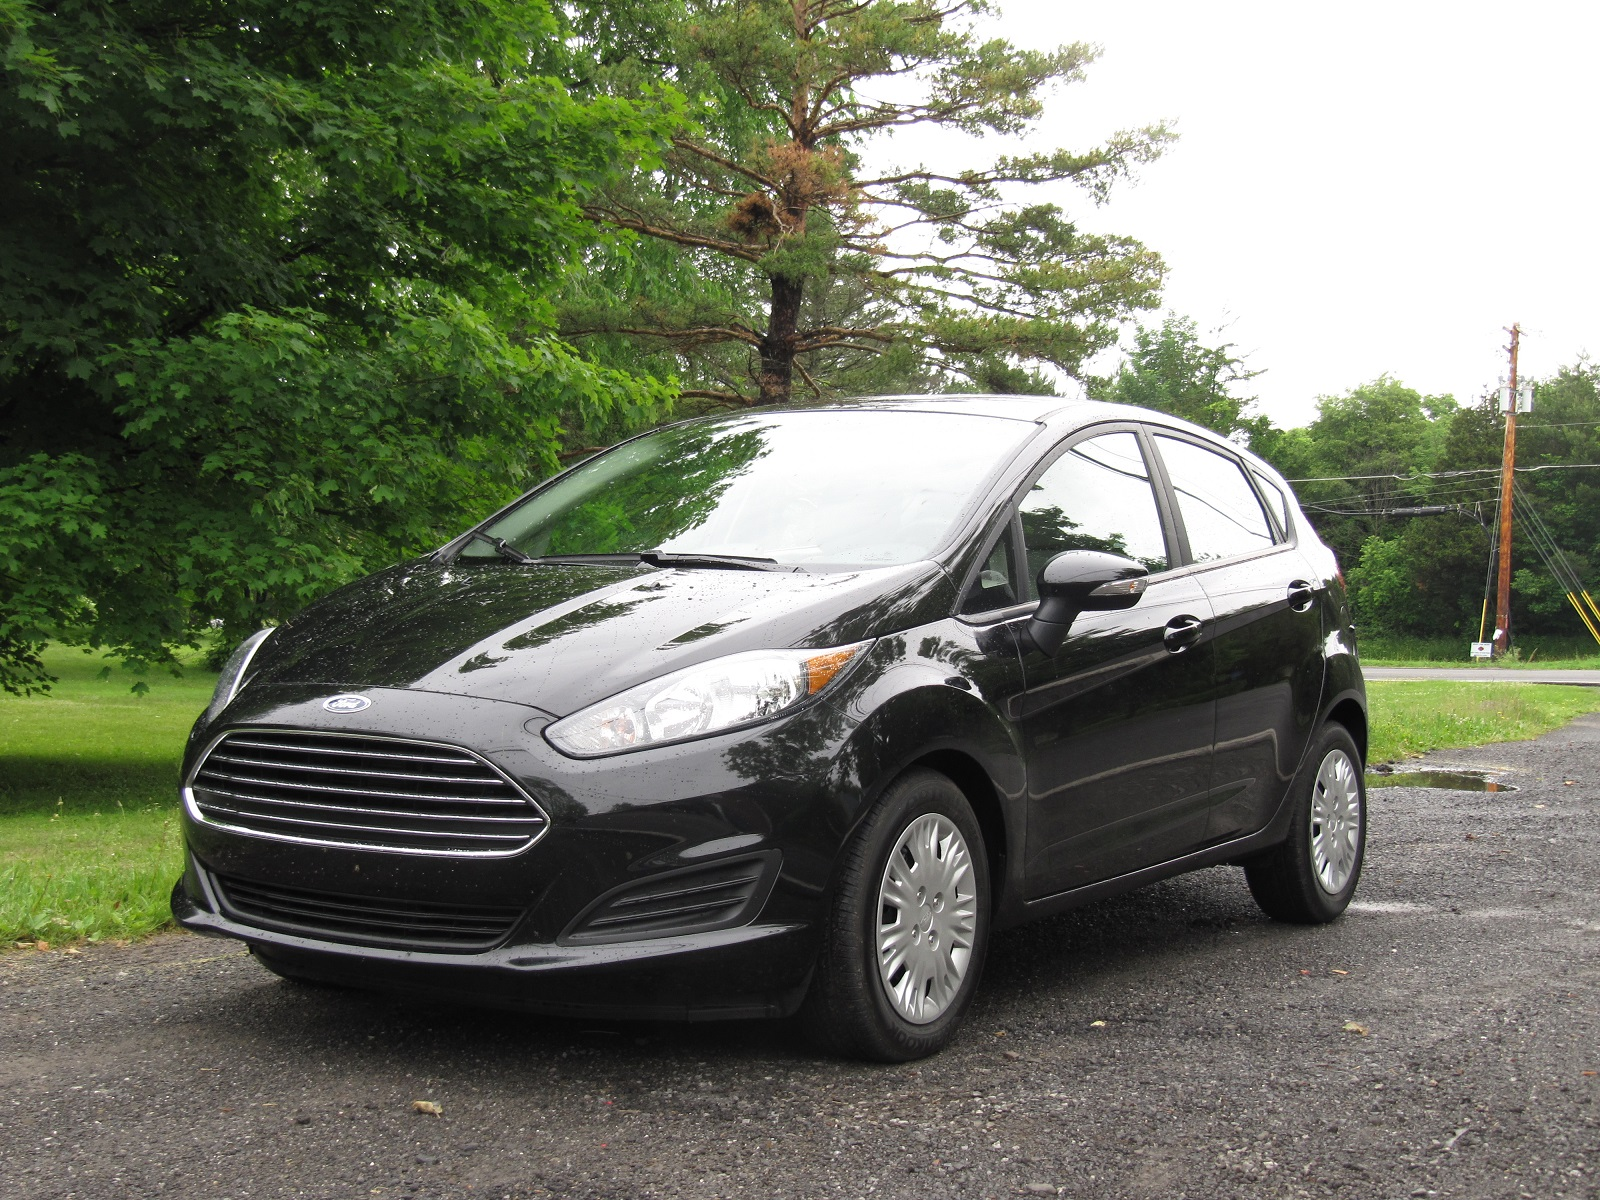 2014 ford fiesta ecoboost gas mileage test returns 40 mpg. Black Bedroom Furniture Sets. Home Design Ideas